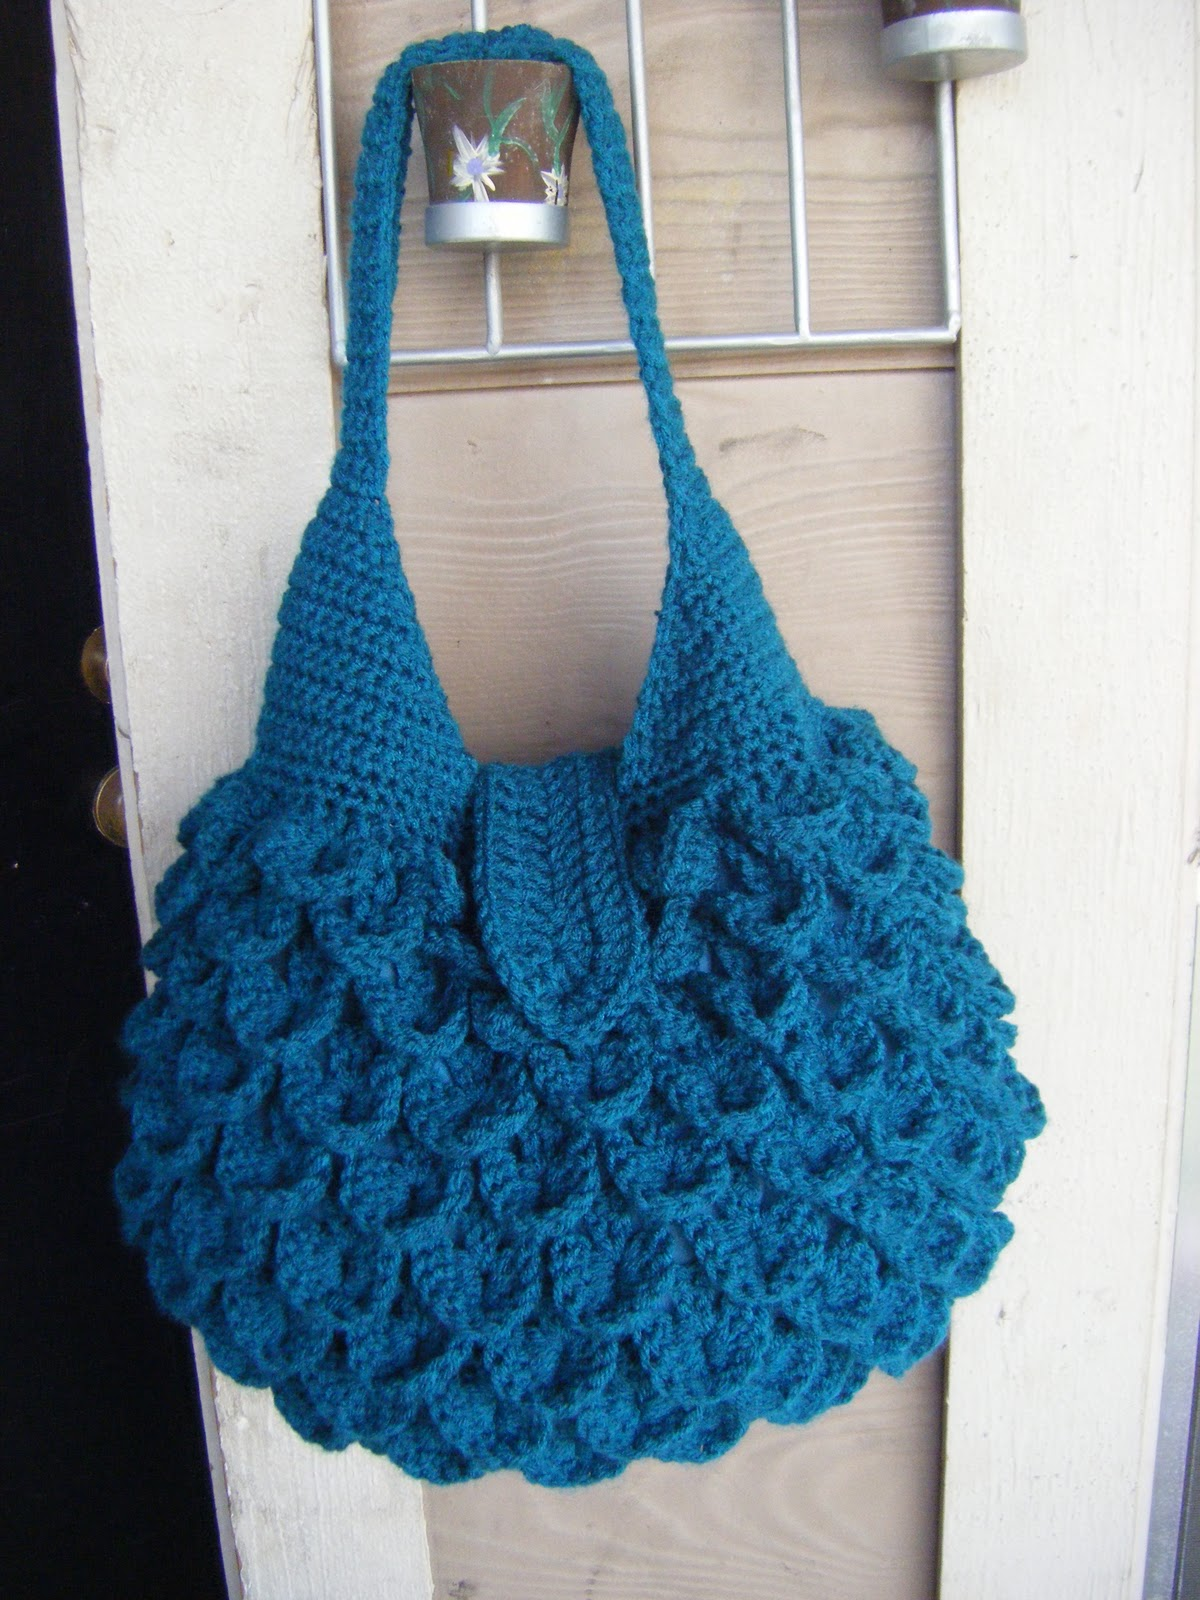 Crochet Patterns Purses : Best Patterns: Crocodile Crochet Bag PATTERN